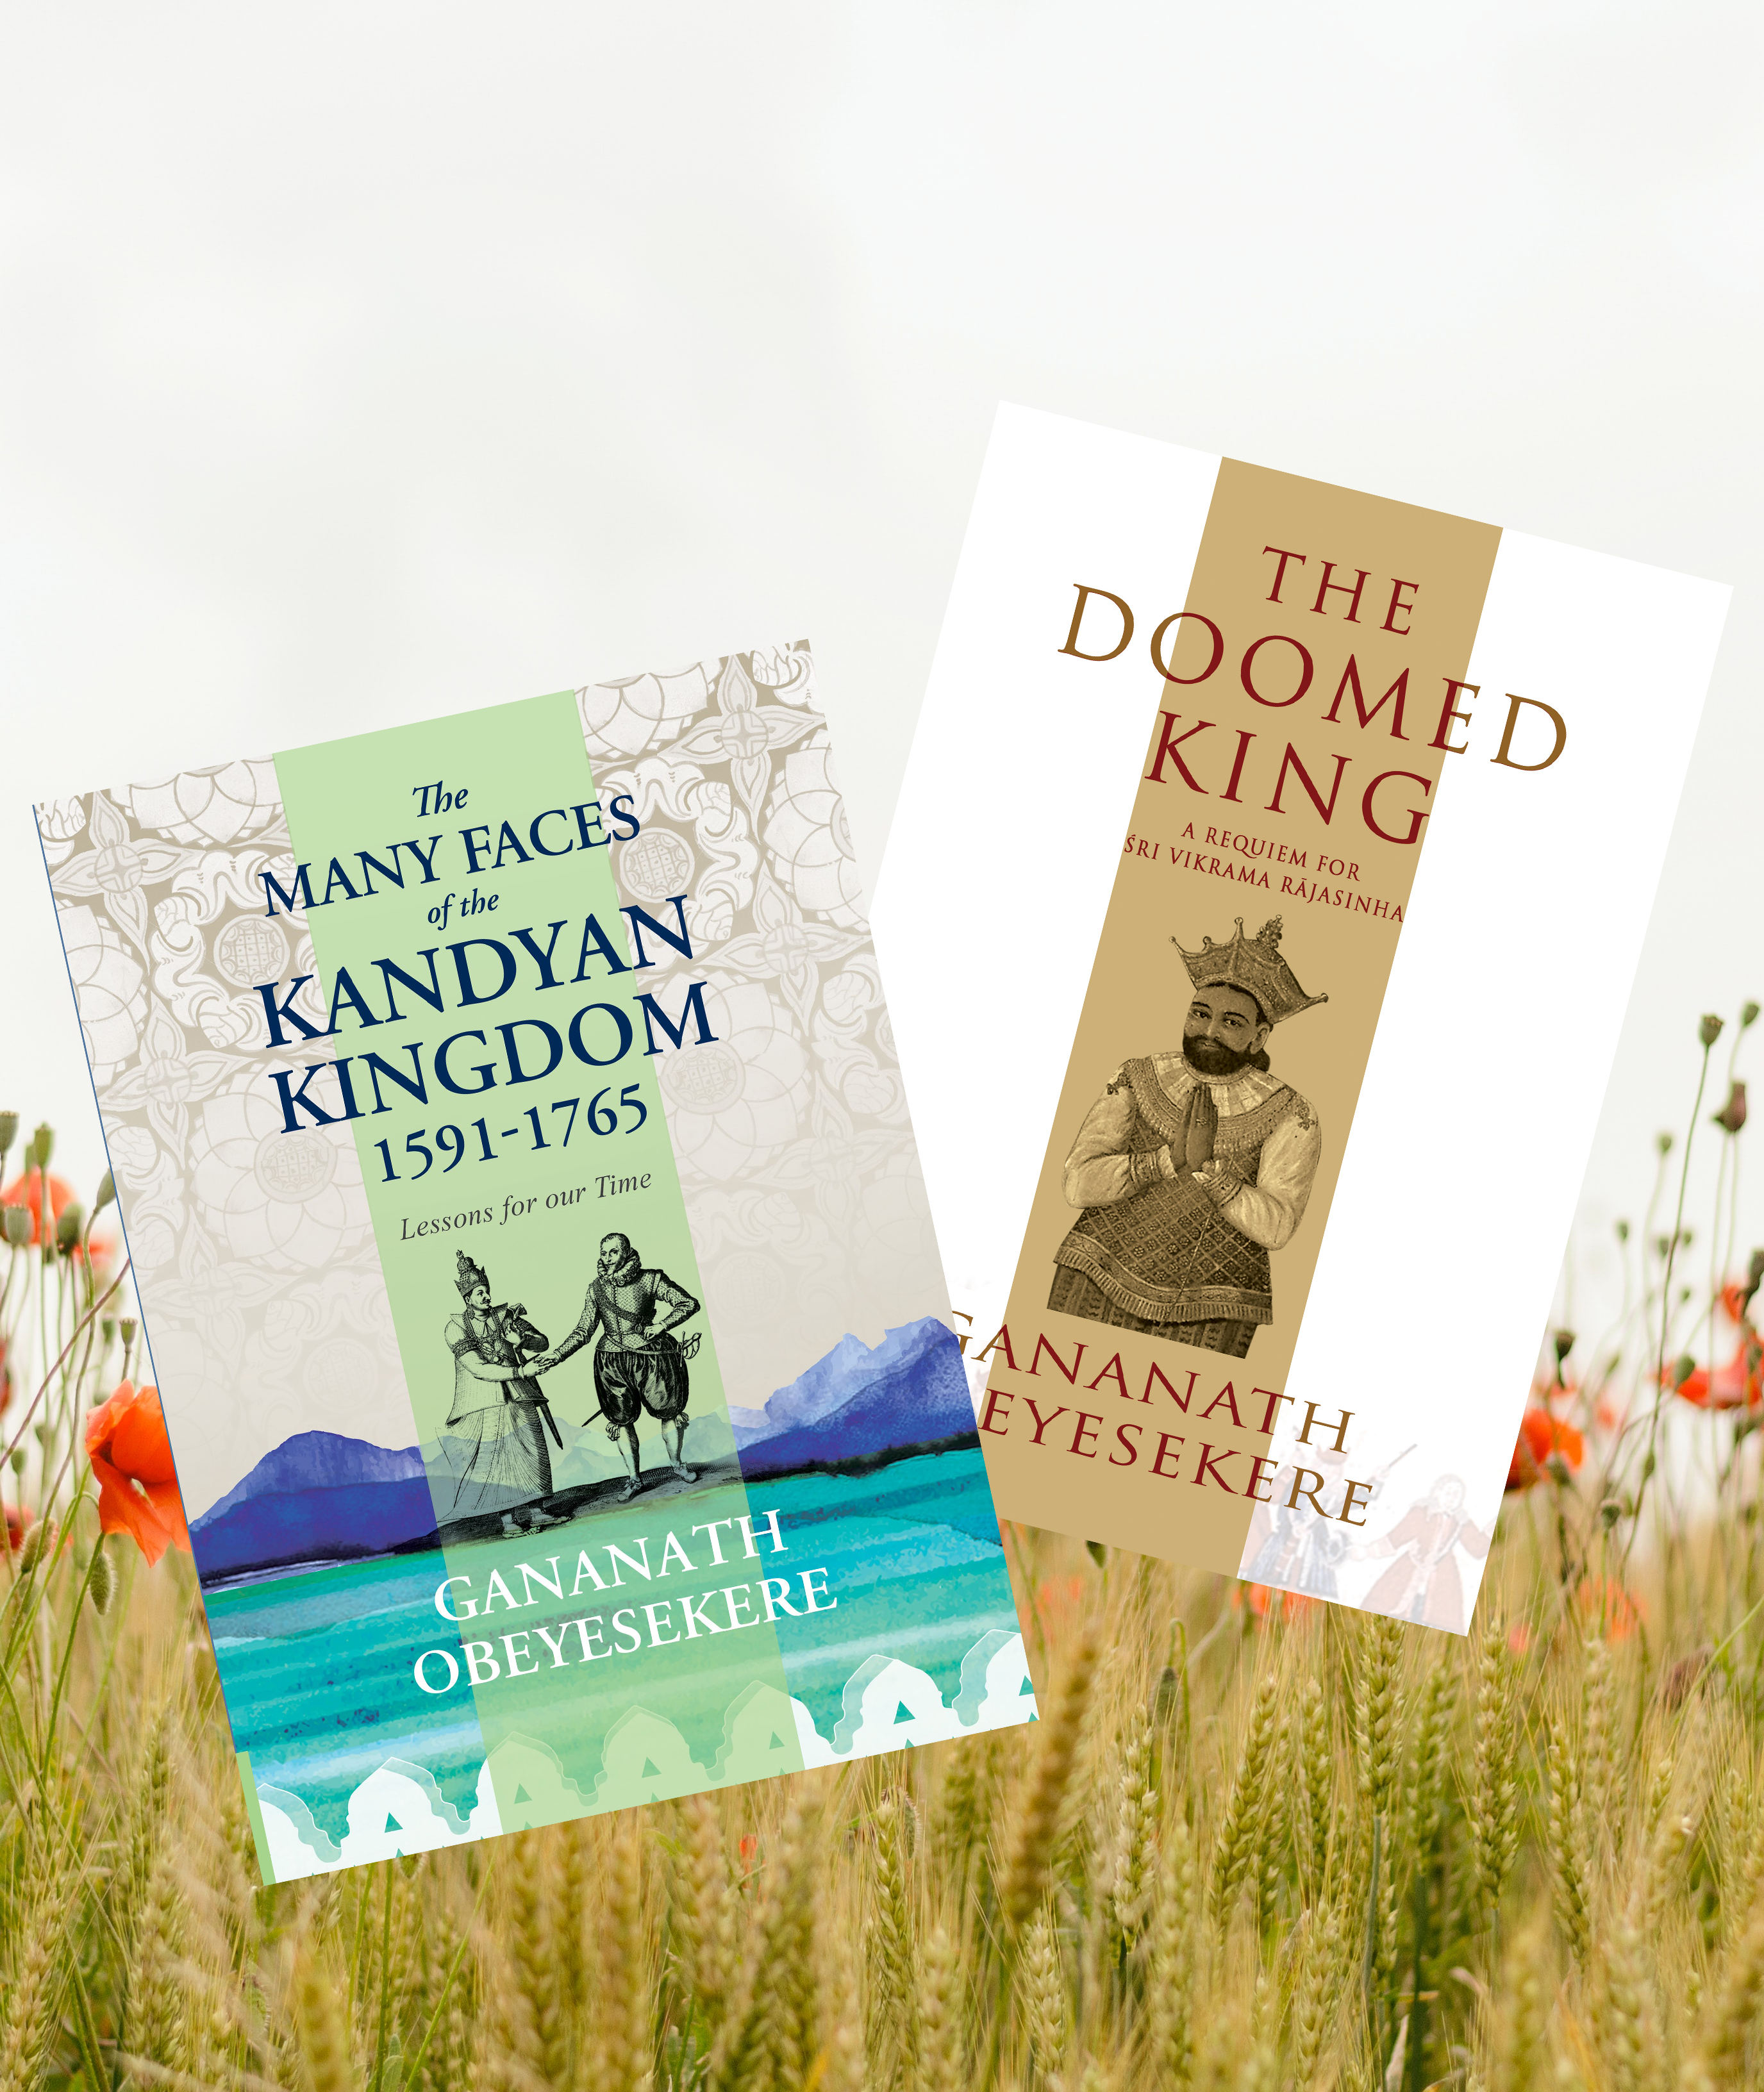 BUNDLE: The Many Faces + The Doomed King